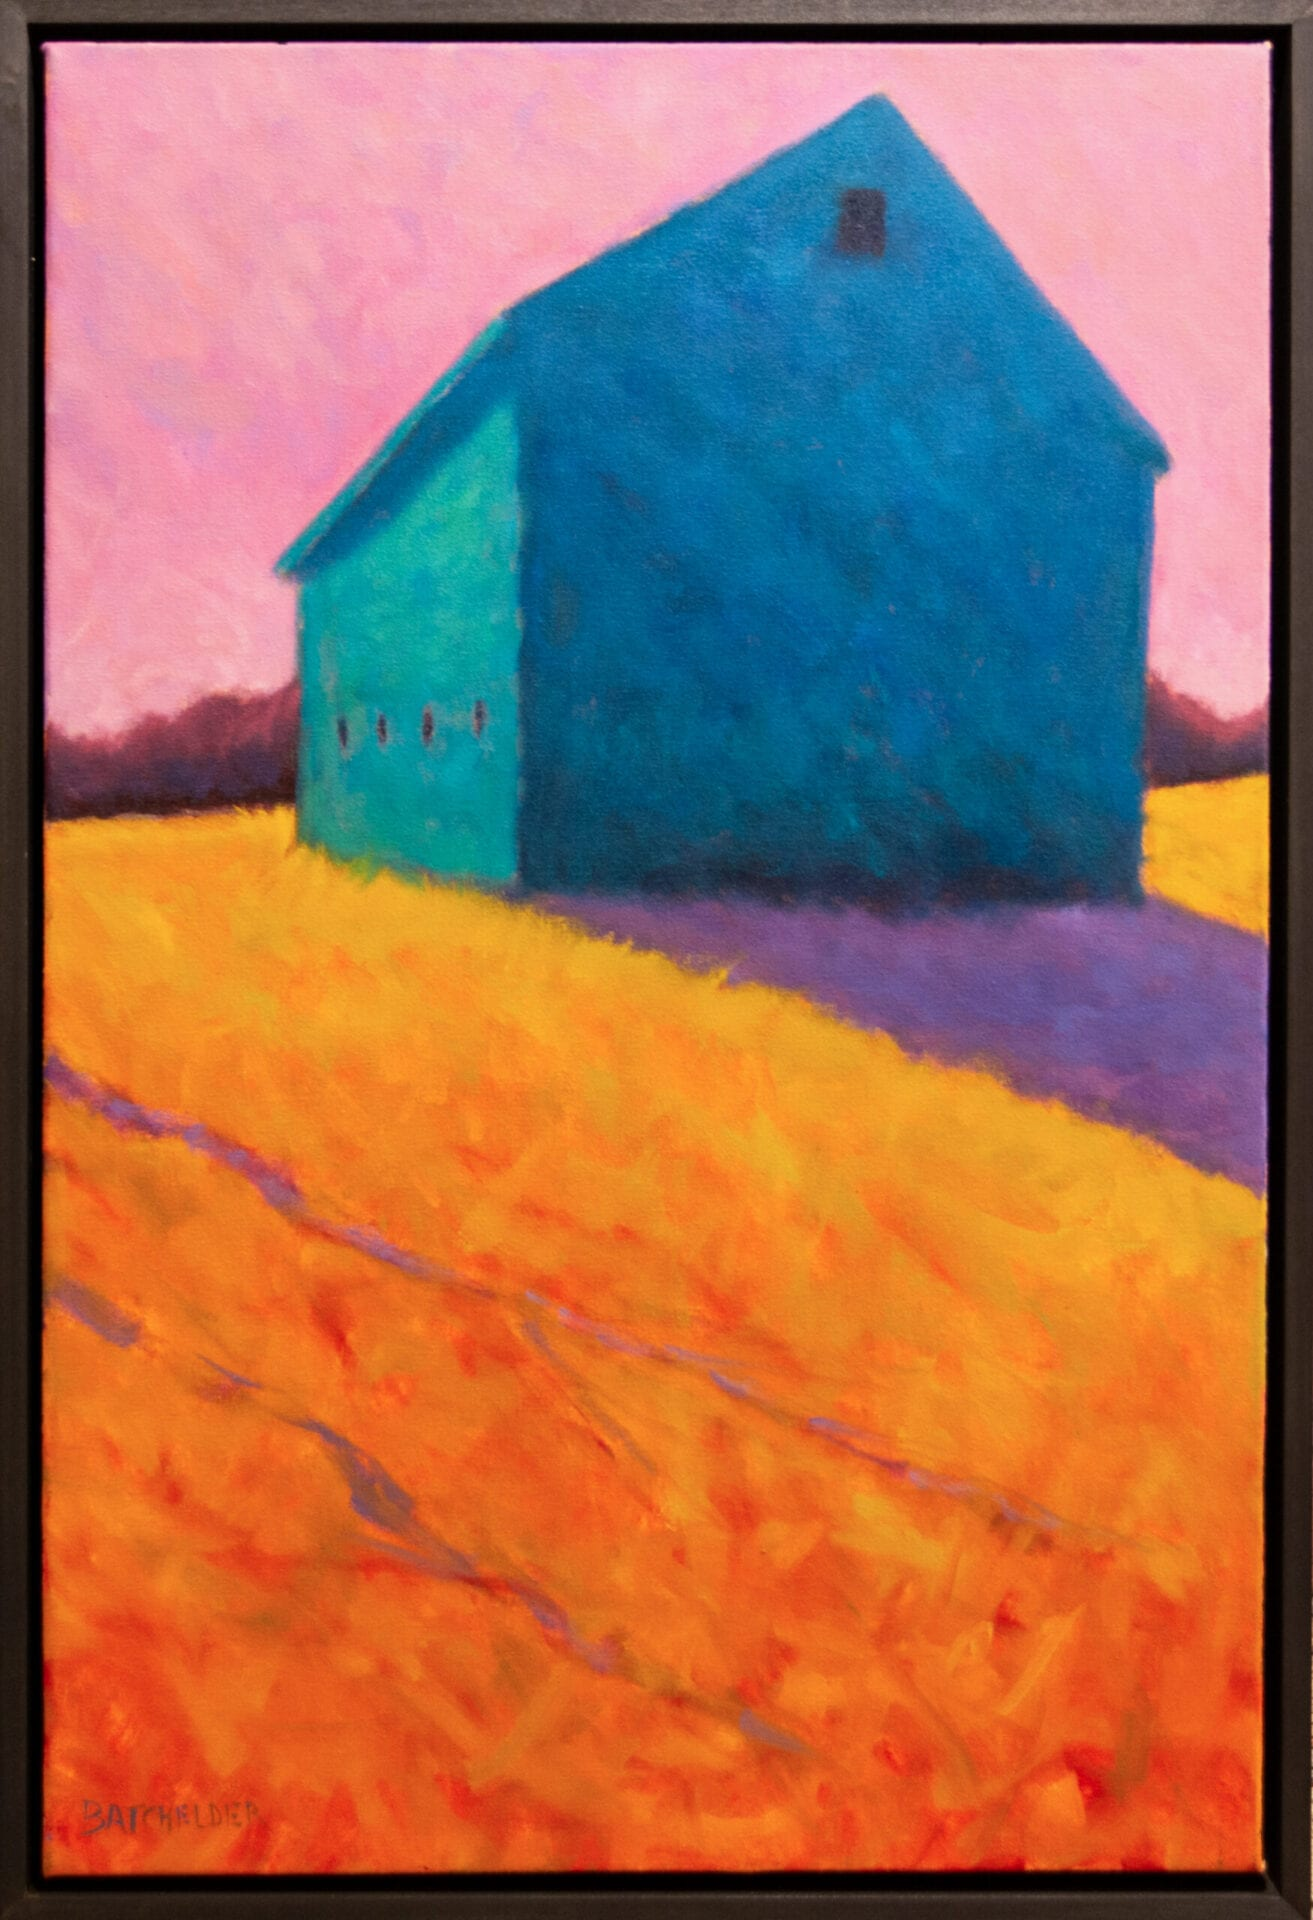 Rose Sky | Peter Batchelder | 30 x 20"